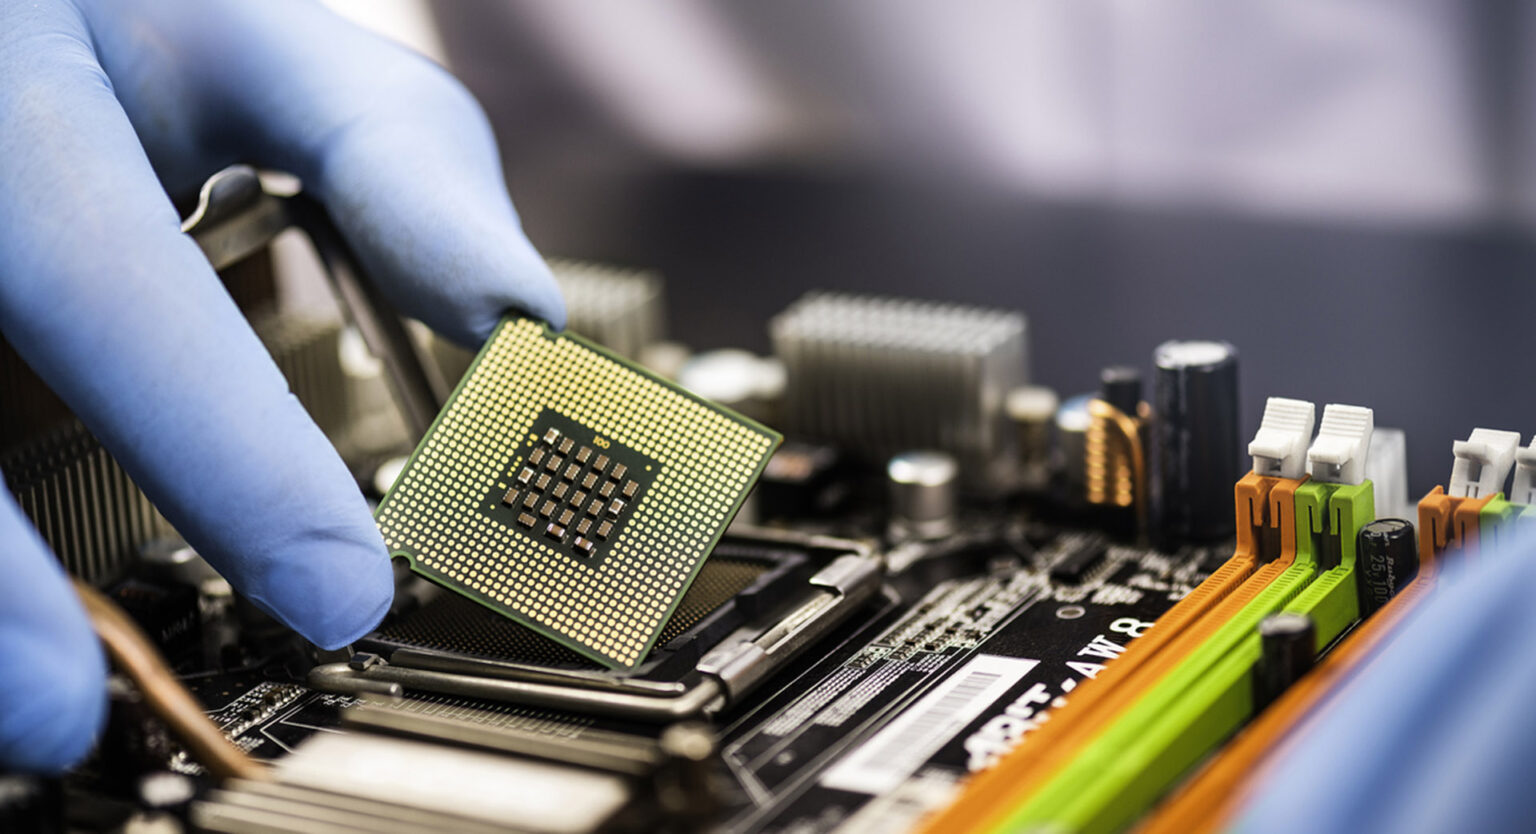 Could the Chip shortage crisis be an opportunity for a new mobility?